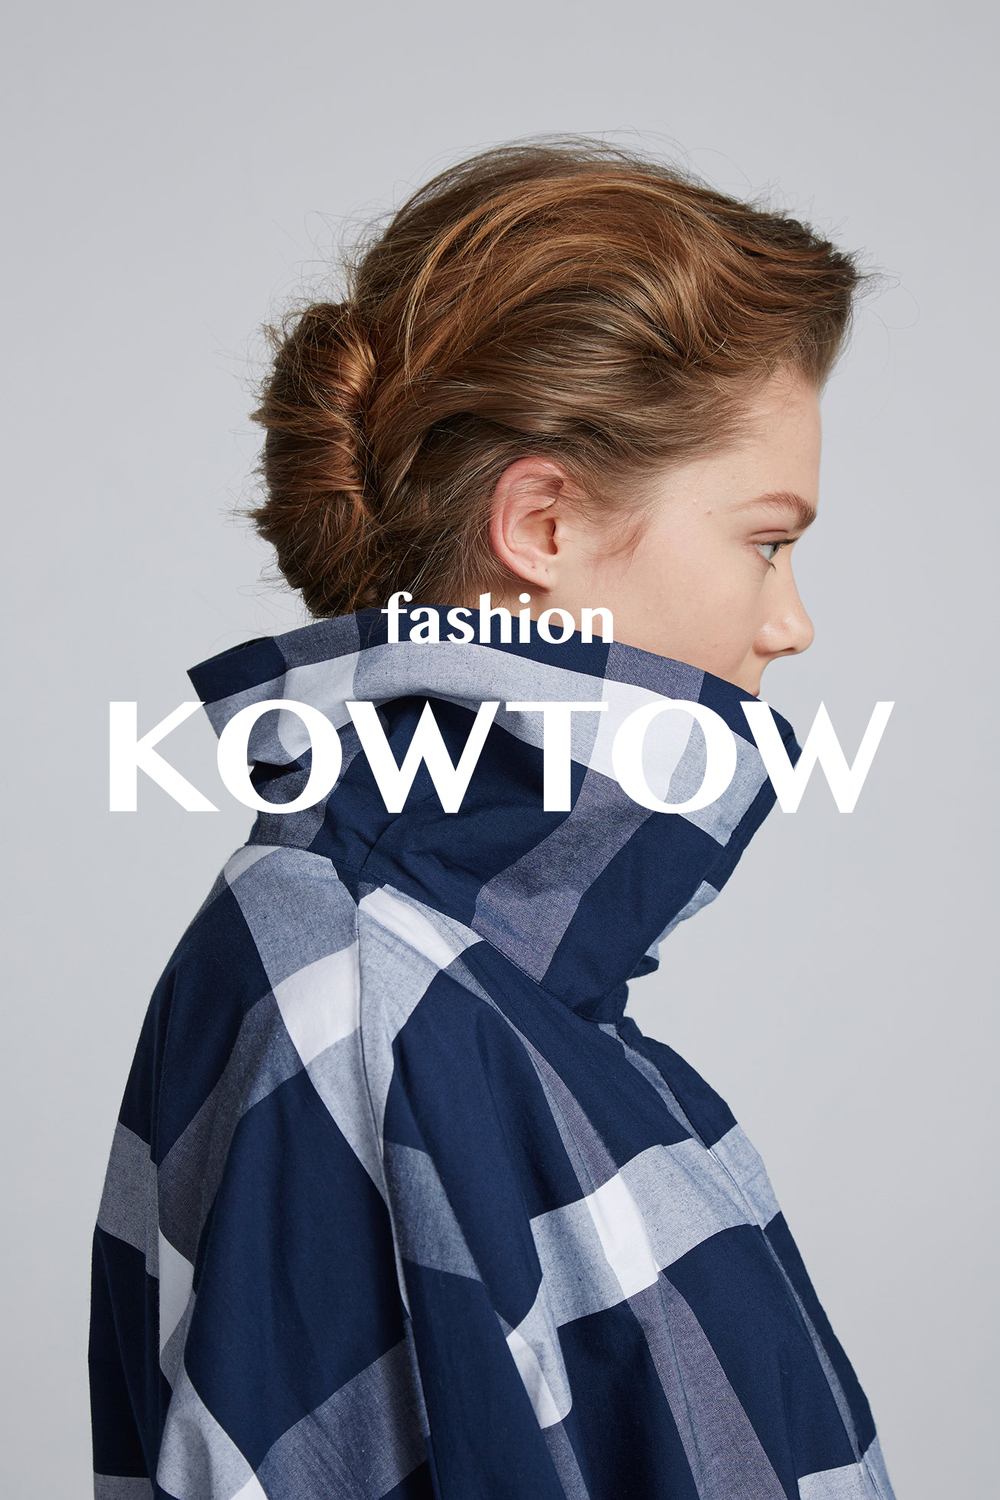 KOWTOW PROMOTES LOVE WITH THEIR NEW COLLECTION March 1, 2016